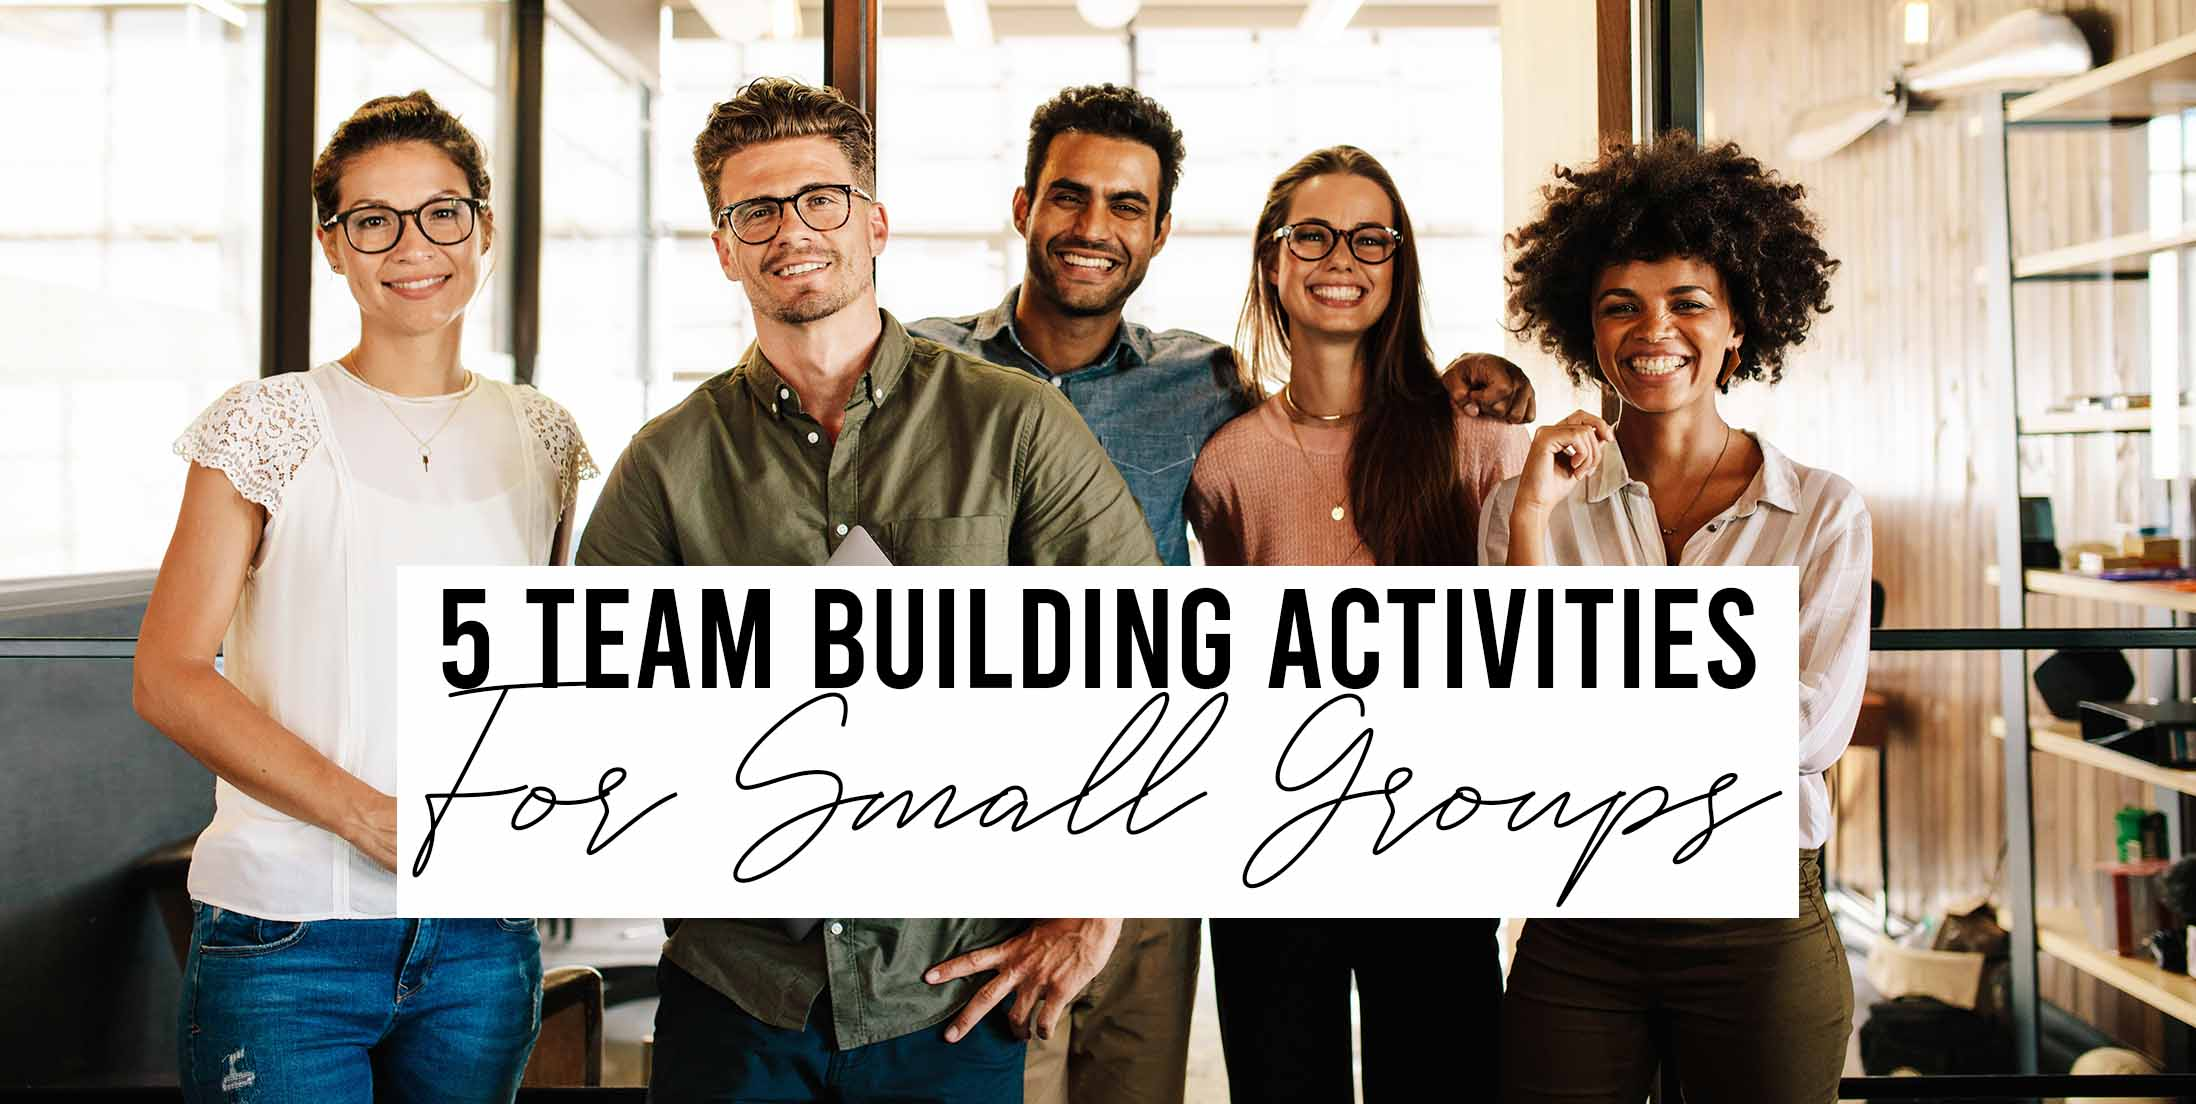 5 Team Building Activities for Small Groups